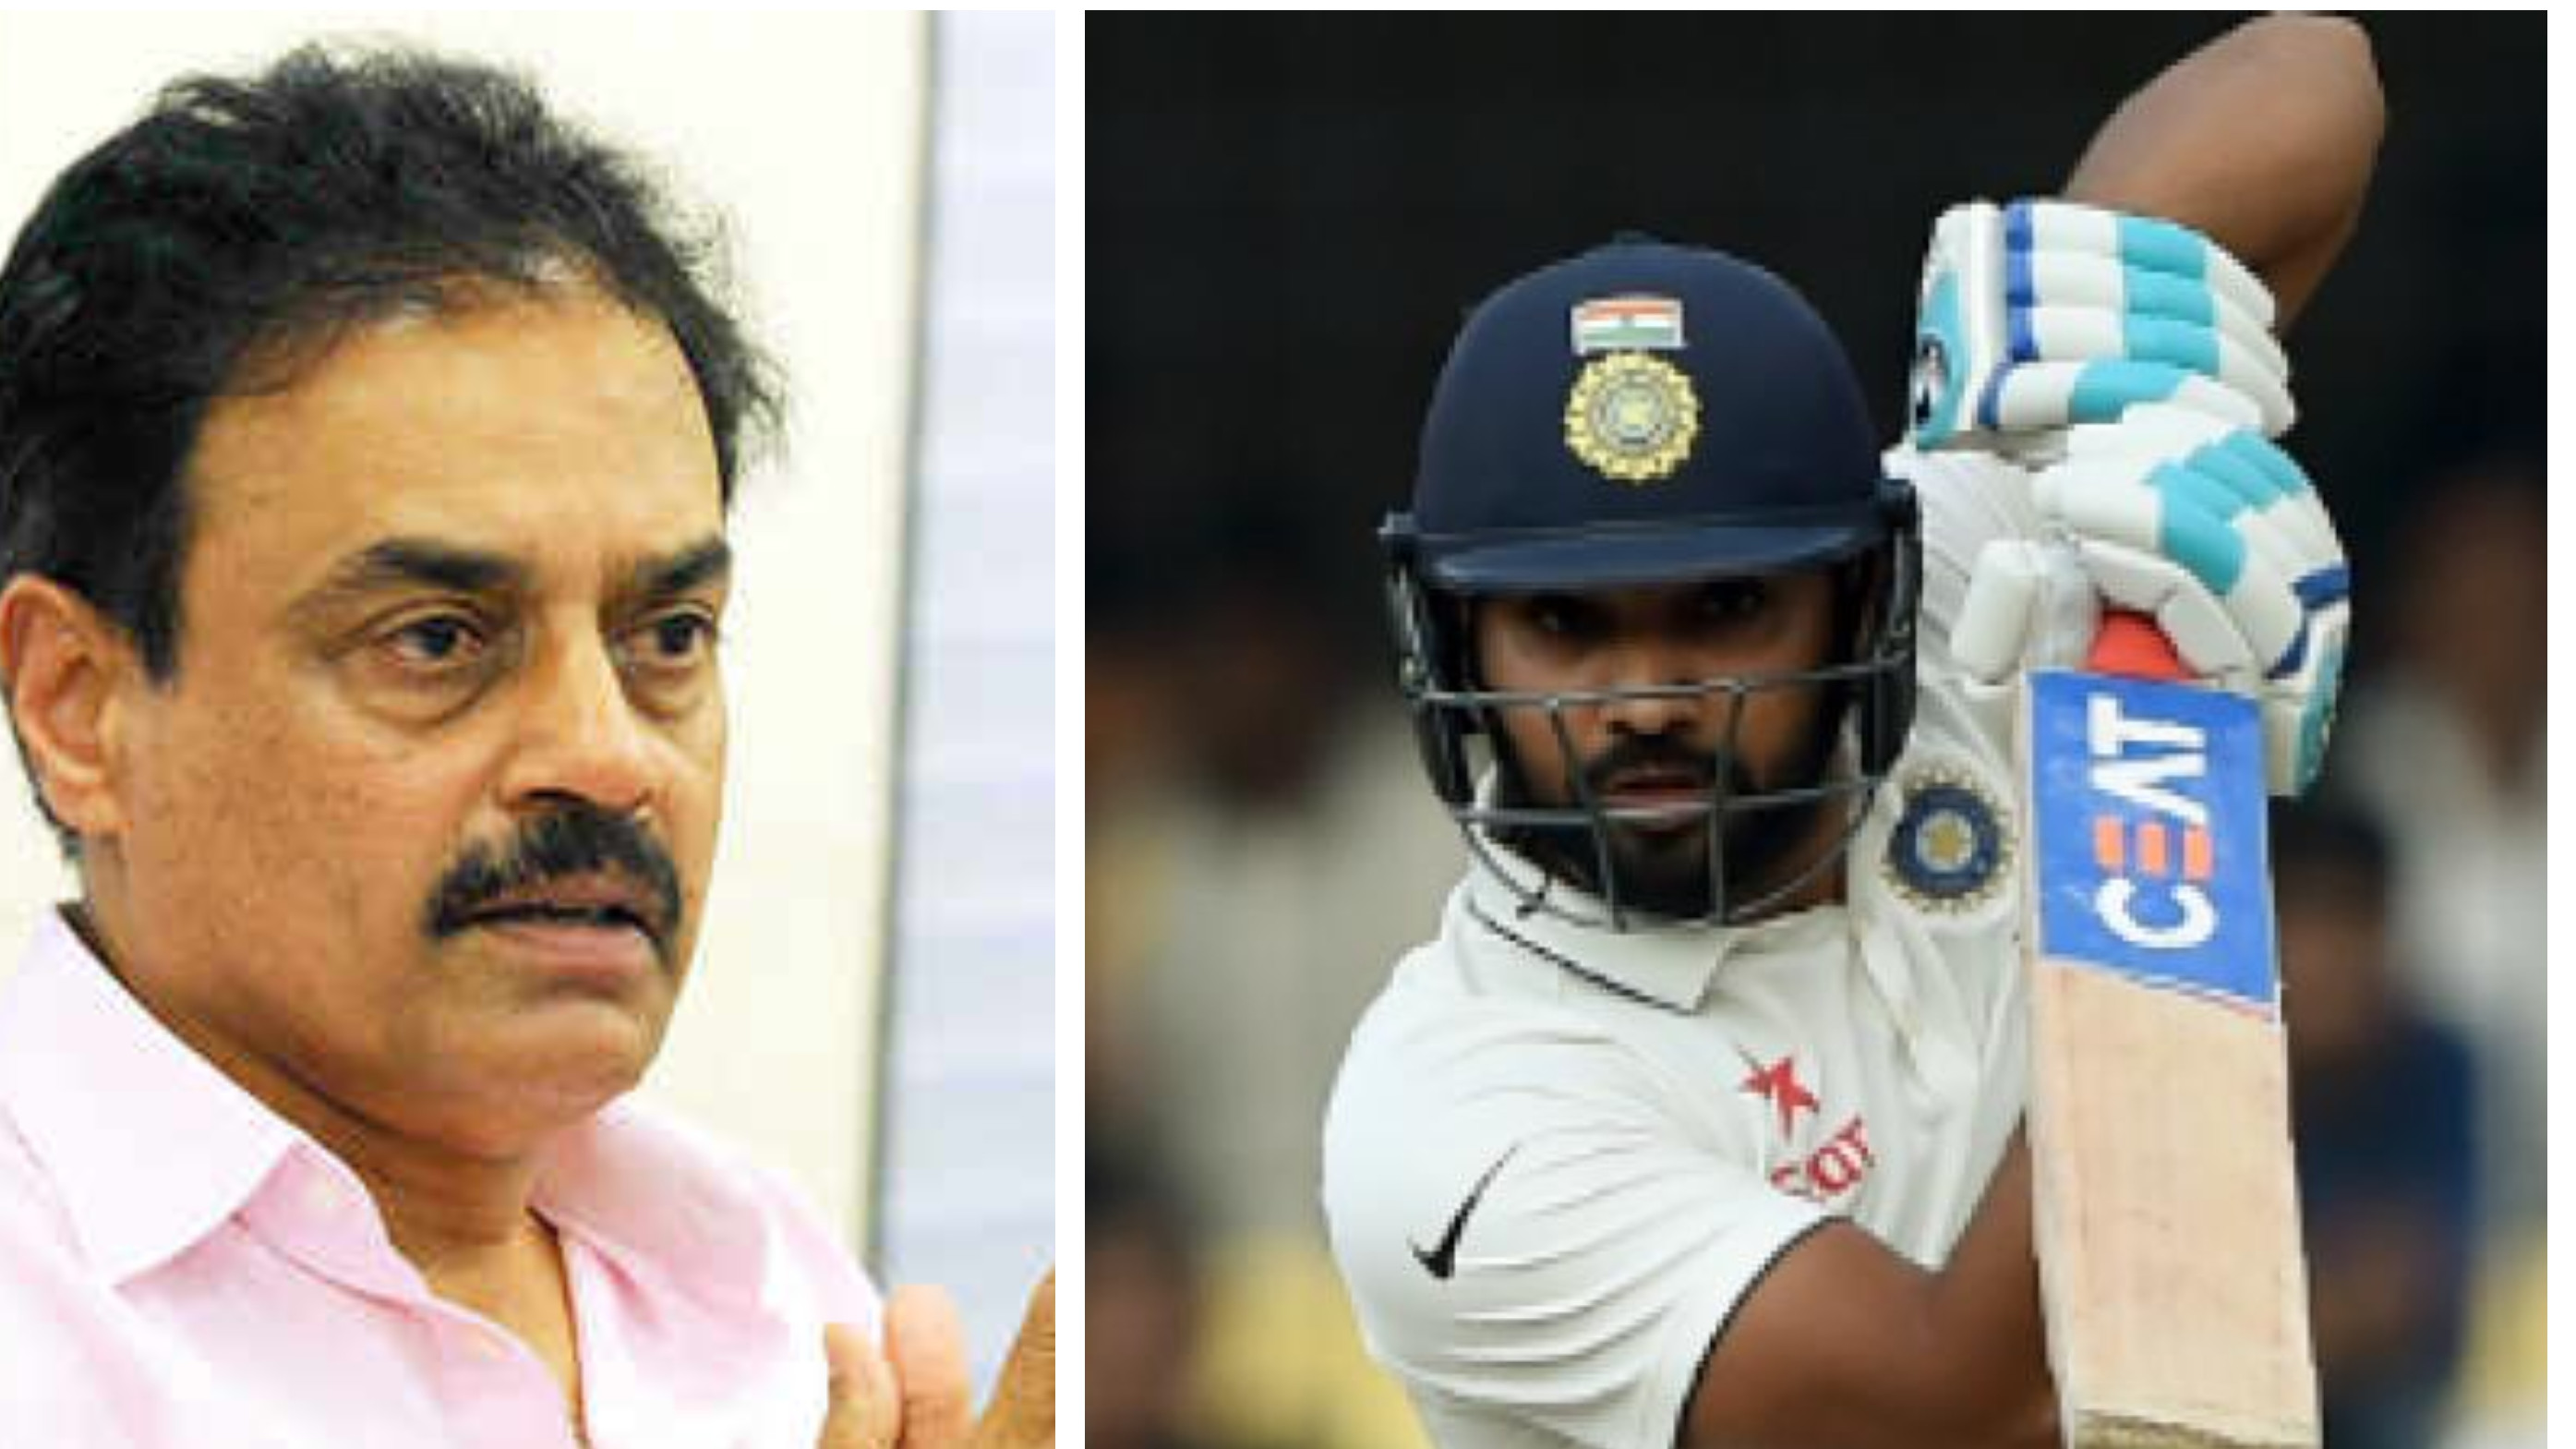 ENG vs IND 2018: It was a selection error to not pick Rohit Sharma, says Dilip Vengsarkar